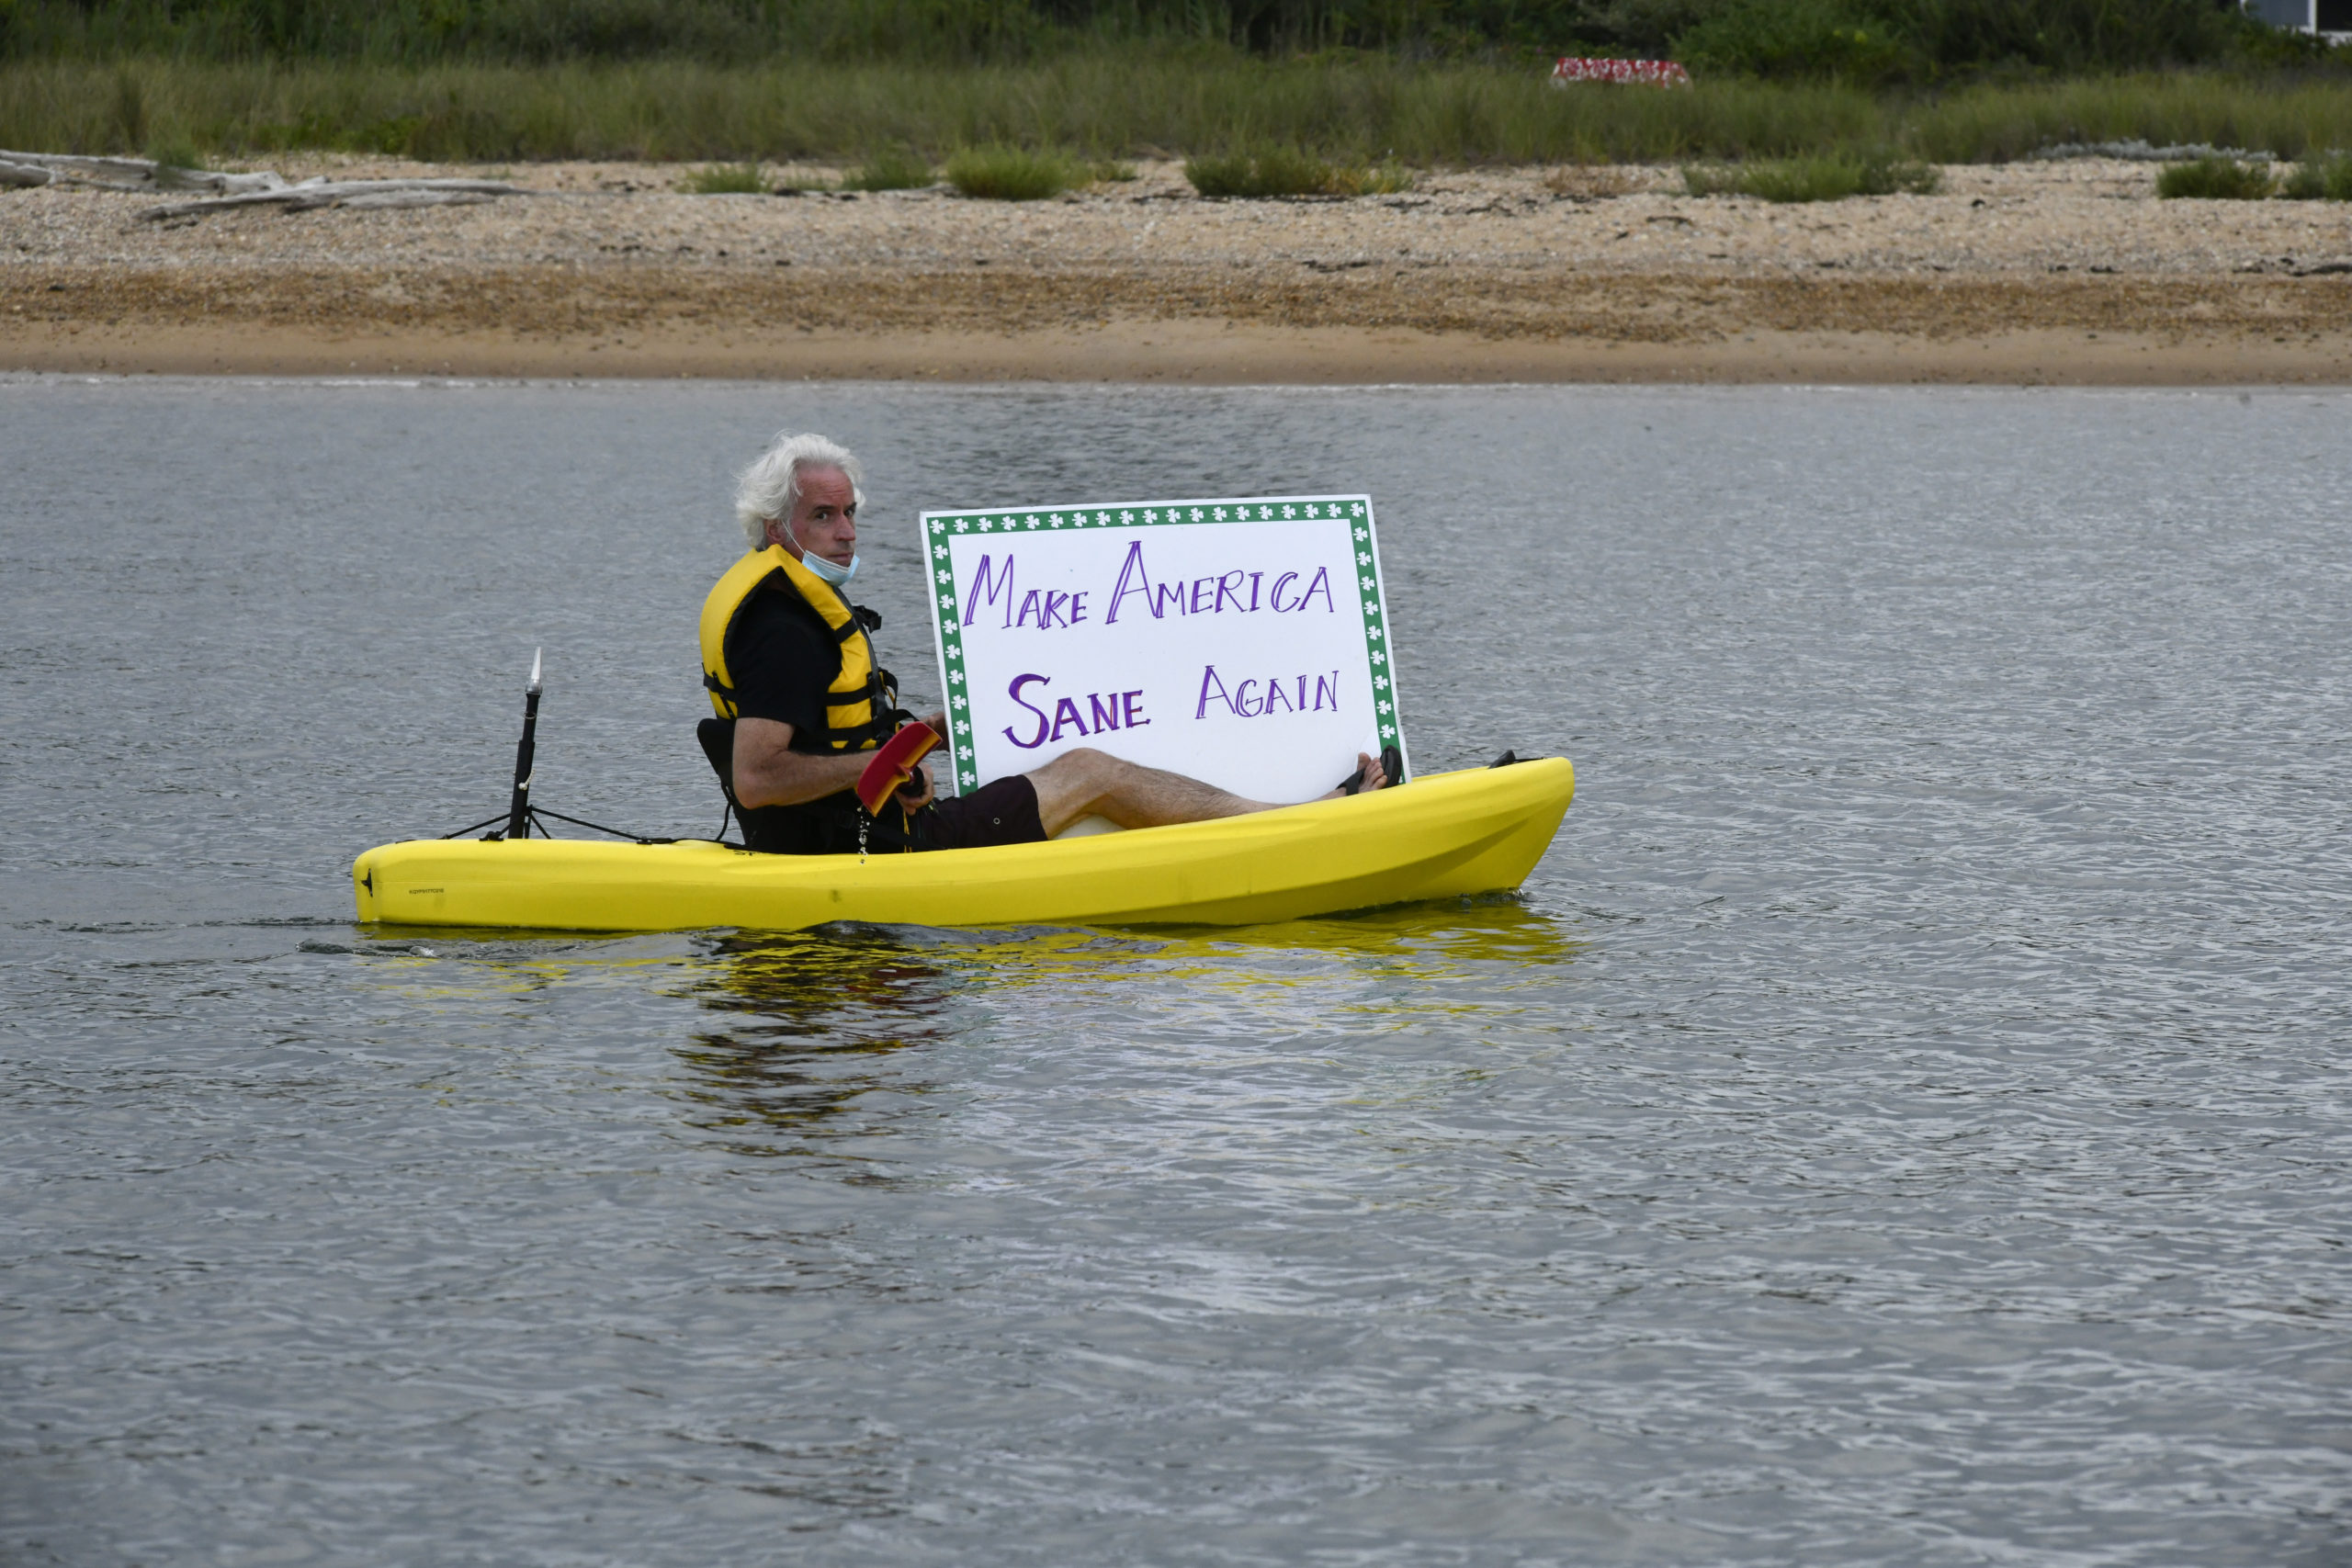 Kayaker Thomas Byrne shows his support for presidential candidate Joe Biden at